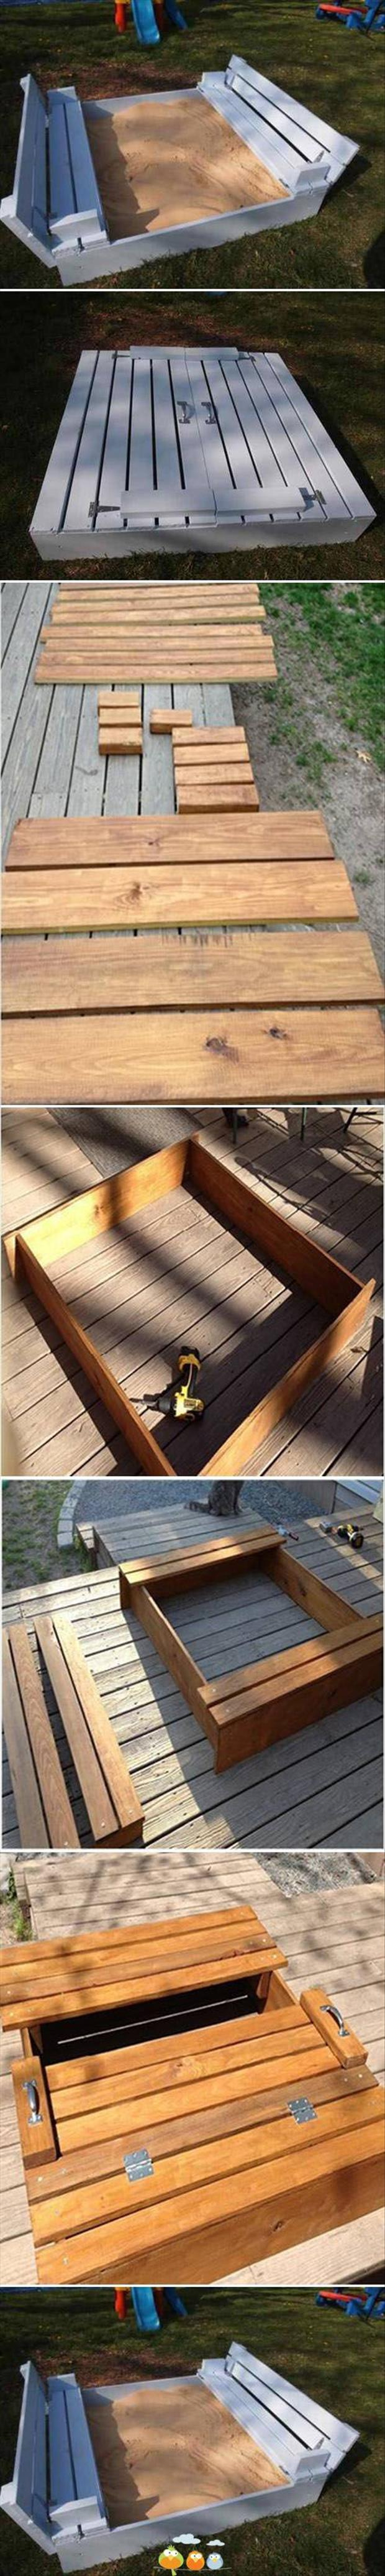 Pallets Knutselen 30 Amazing Uses For Old Pallets